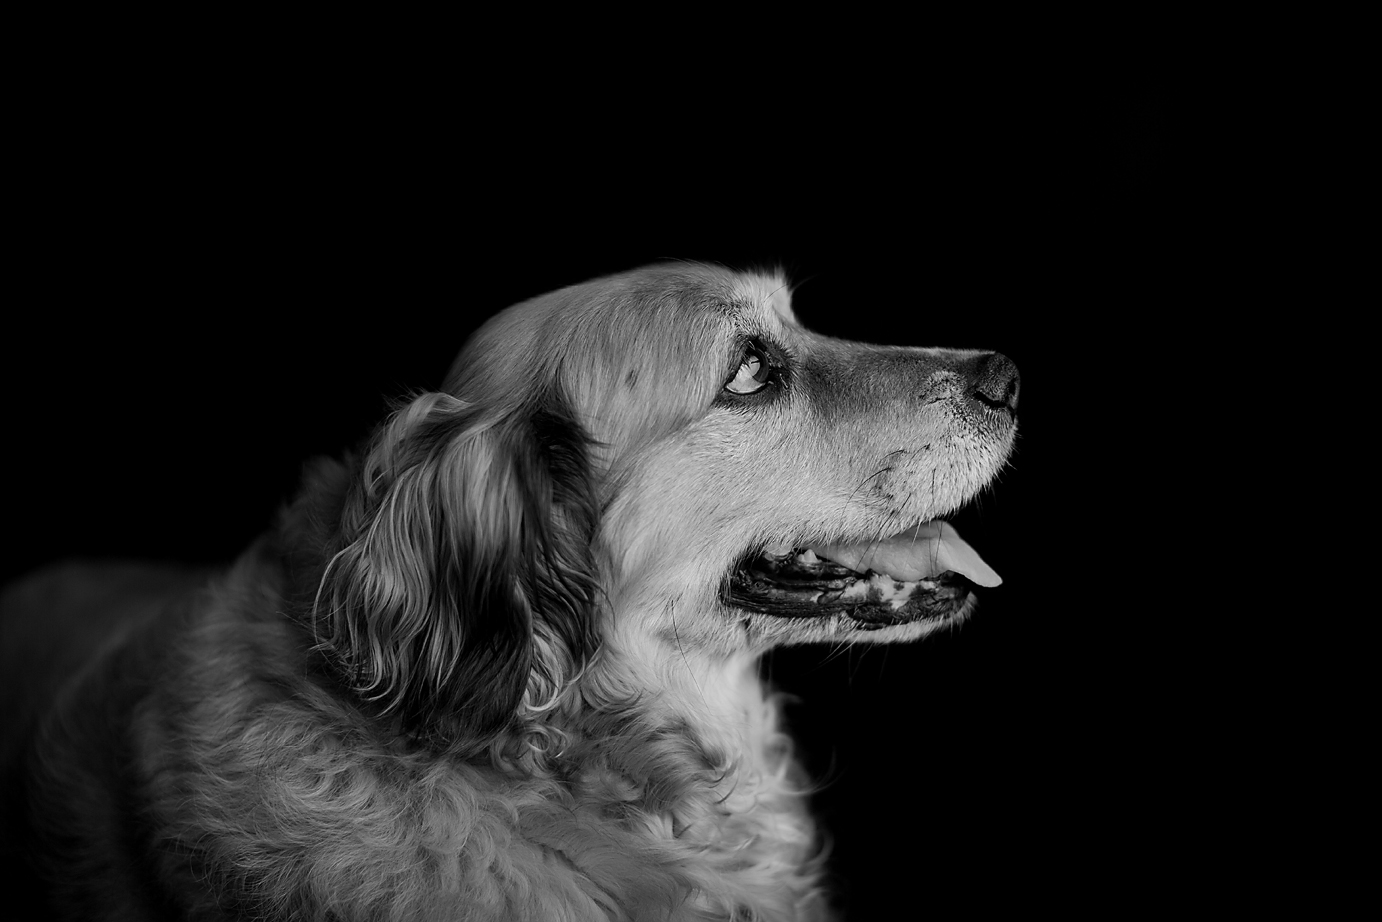 orange-county-child-dog-photography-studio-irvine-simple-black-and-white-portraits.jpg